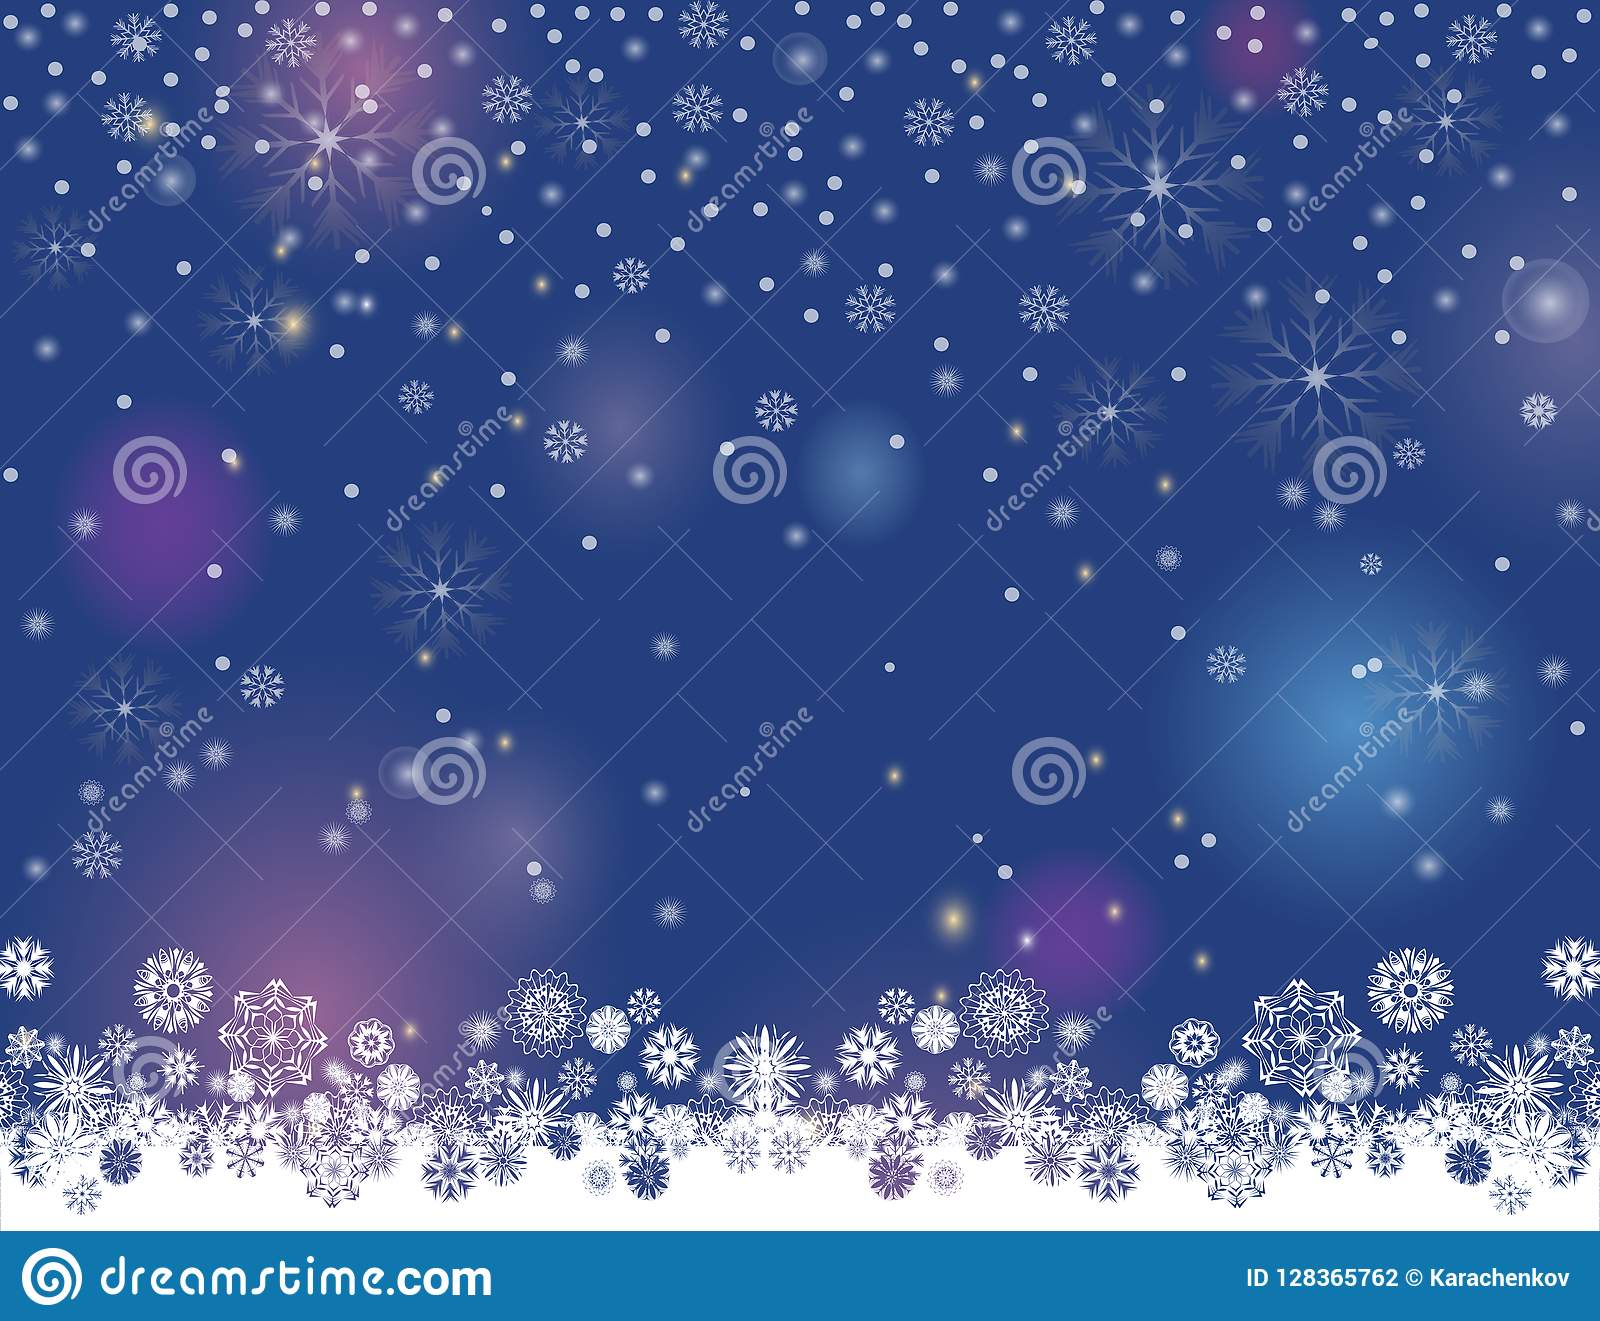 abstract winter night lights blurry background for your merry christmas and happy new year design